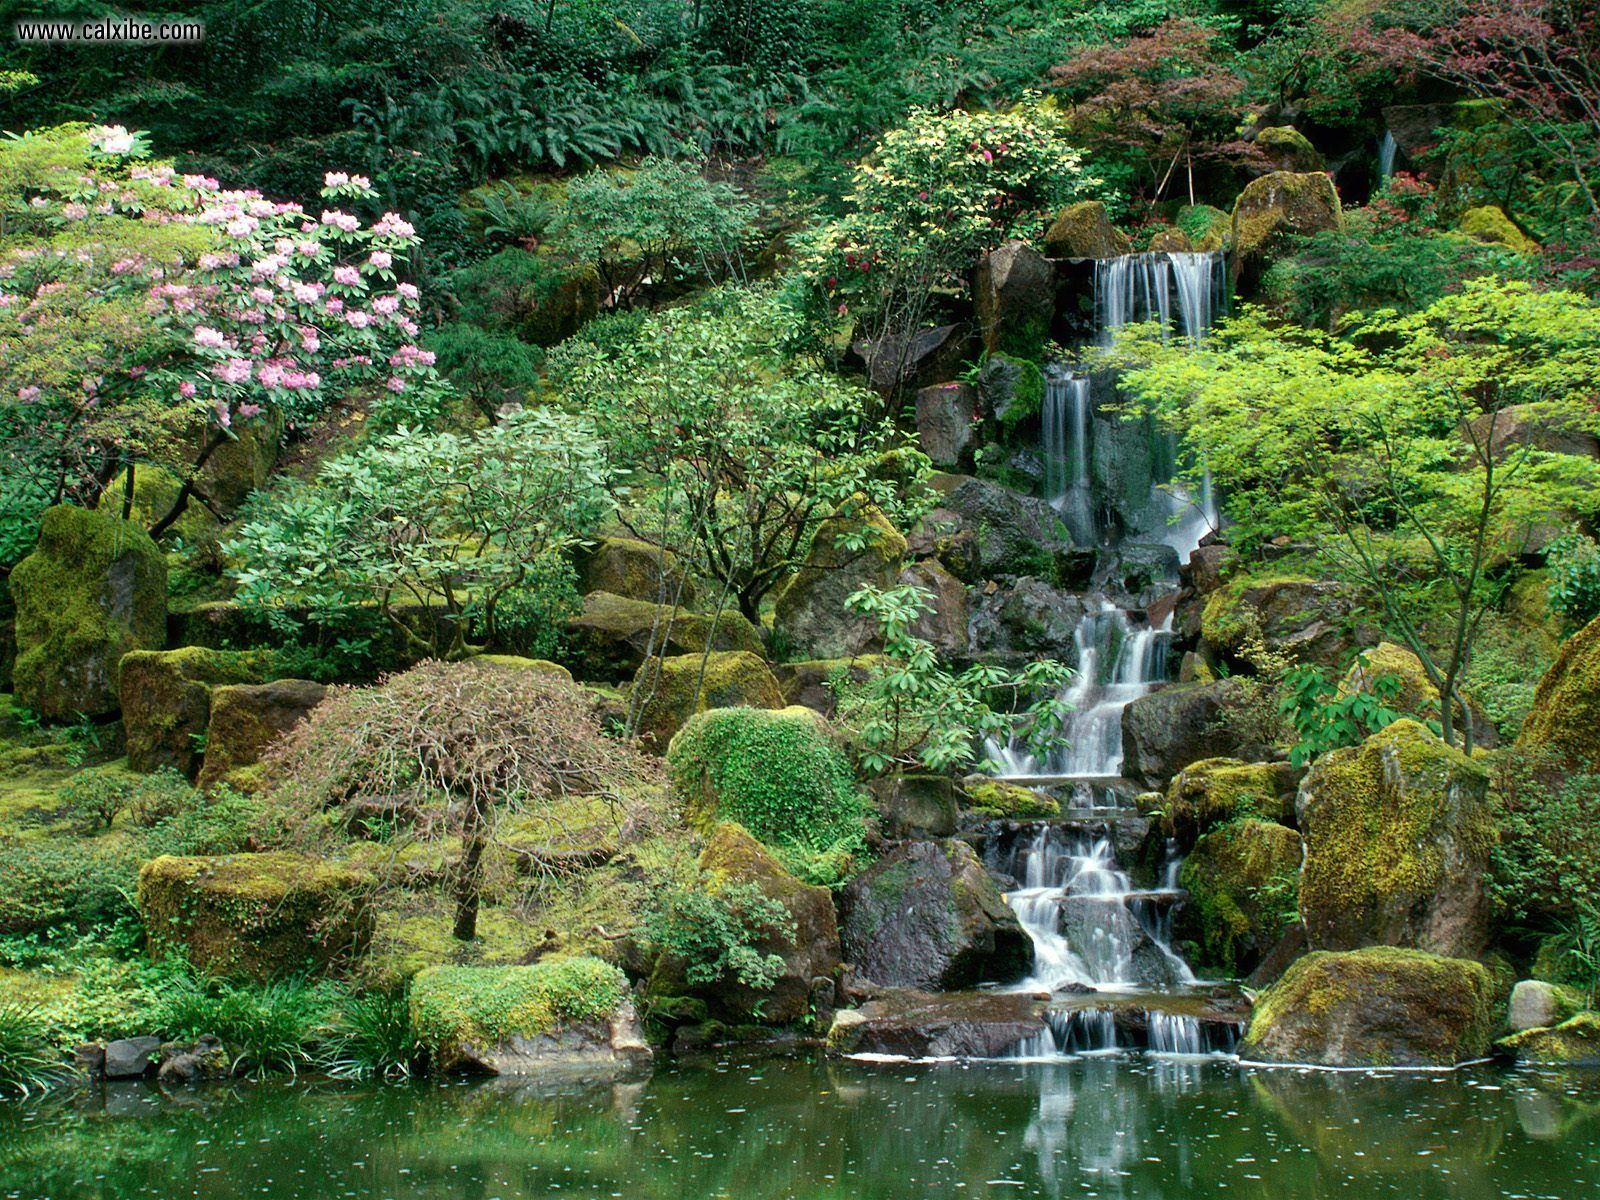 Portland japanese garden botanic garden in portland for The water garden